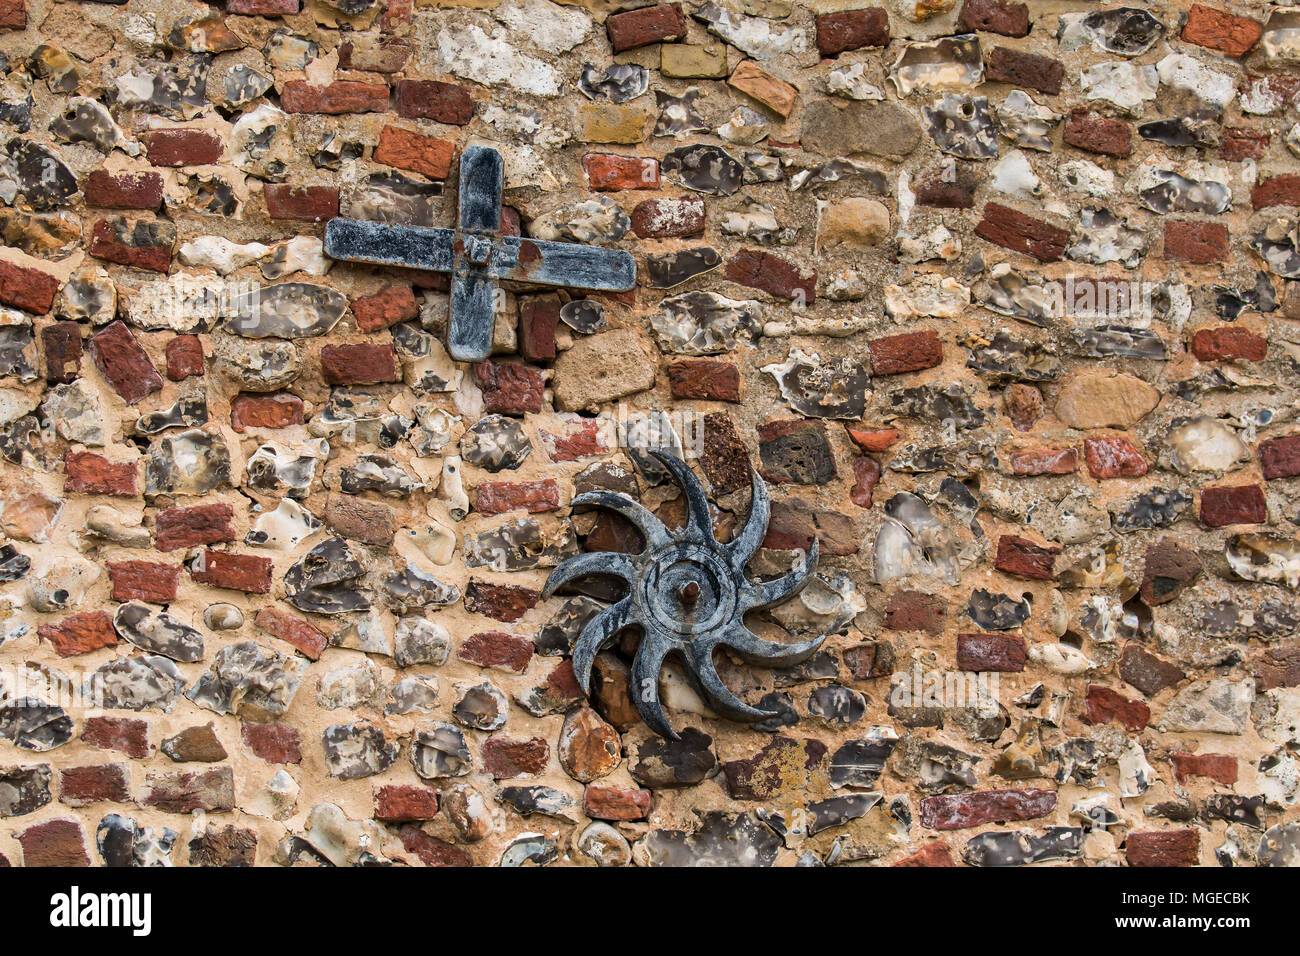 Anchor plates attached to old brick and flint wall. - Stock Image